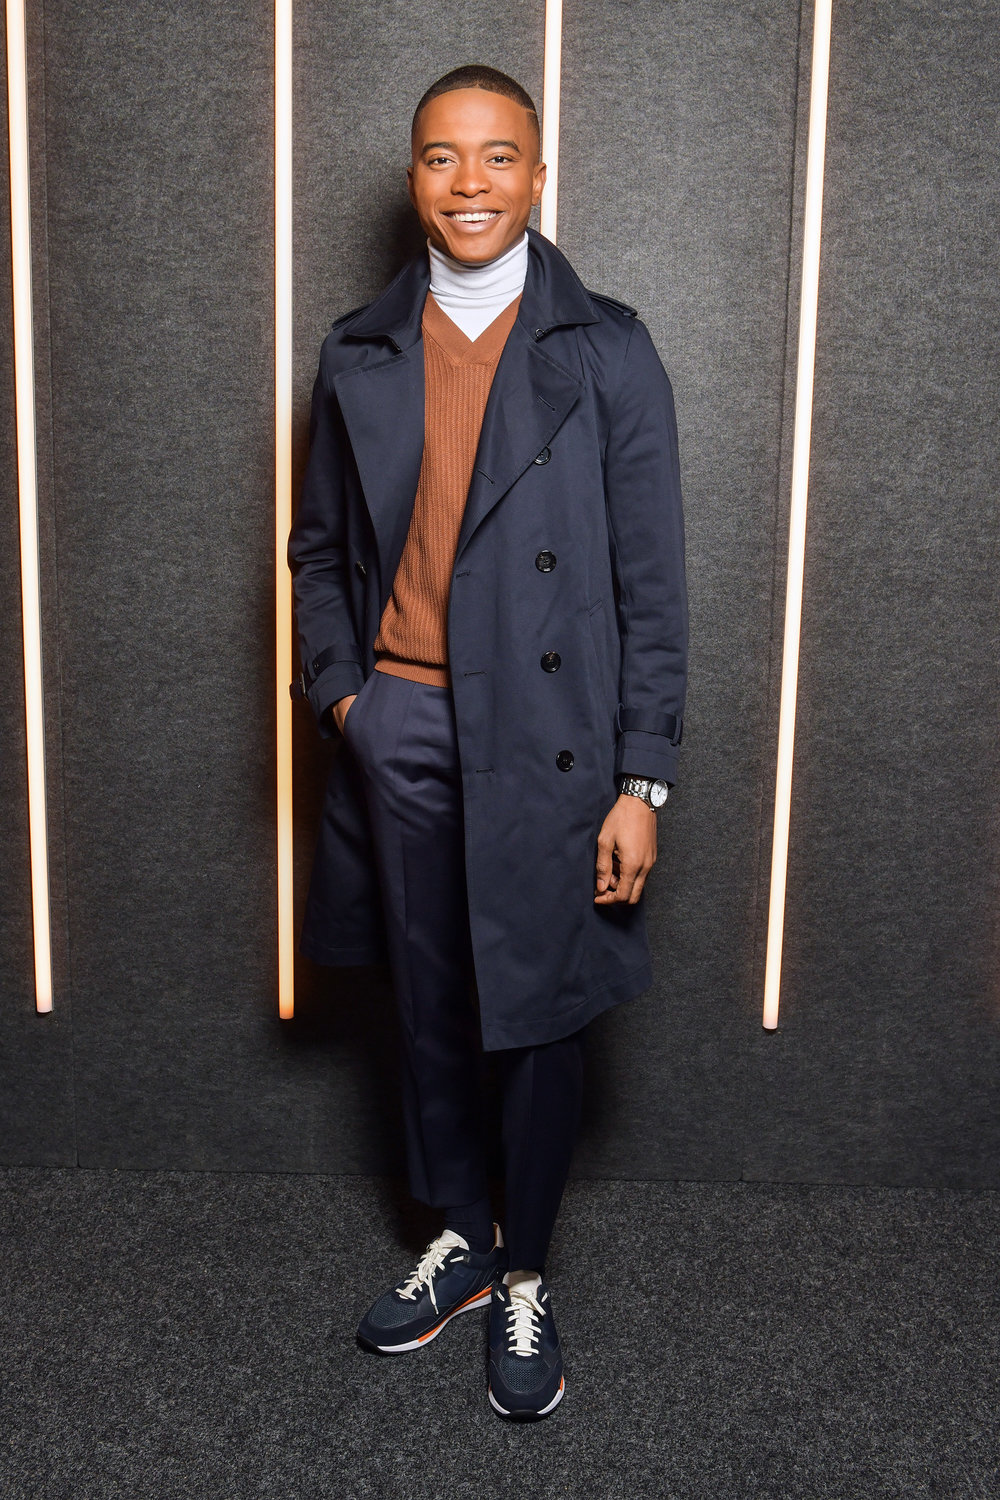 Igee Okafor backstage at the BOSS Fall/Winter 2019 show at Basketball City during New York Fashion Week on Wednesday, February 13, in New York City. Photography, Courtesy of BOSS.